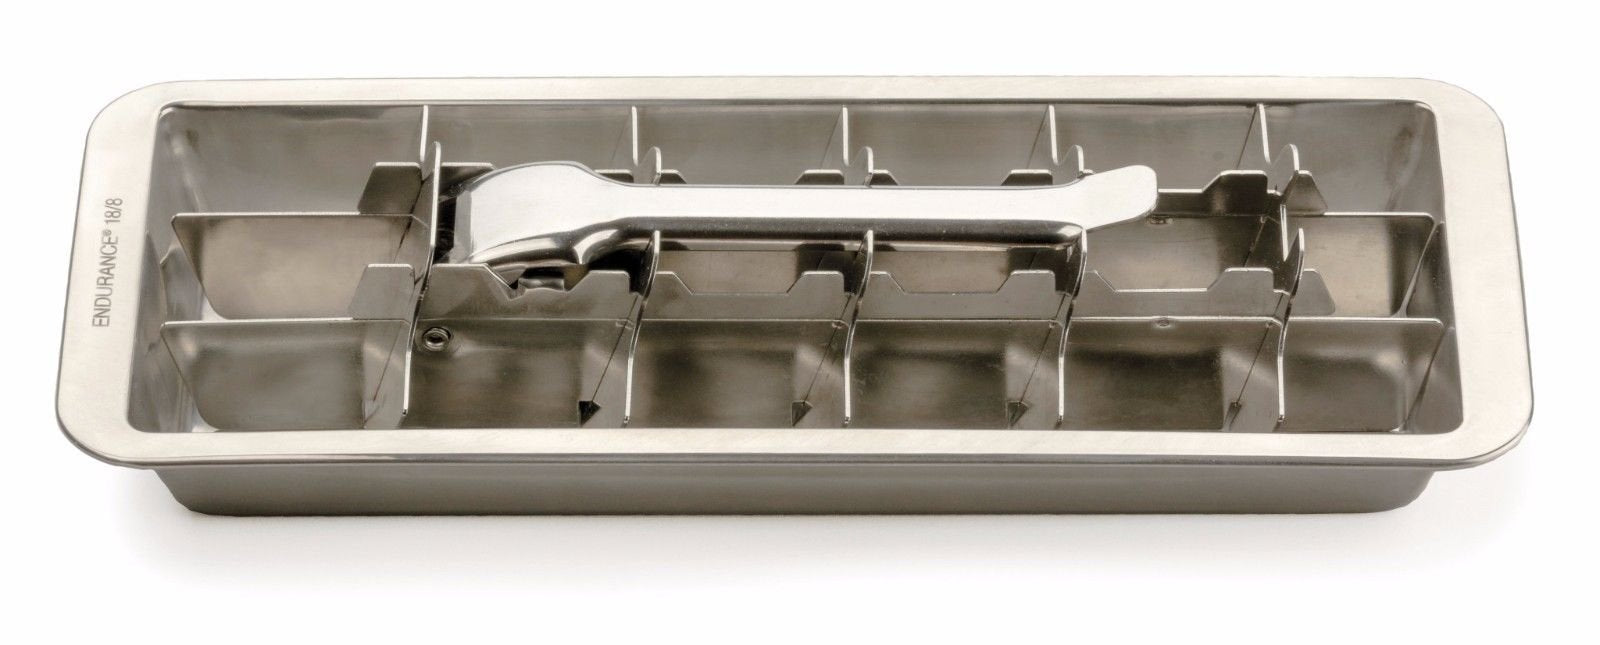 Endurance Stainless Steel 18 Slot Frozen Ice Cube Tray Form Easy Release Handle